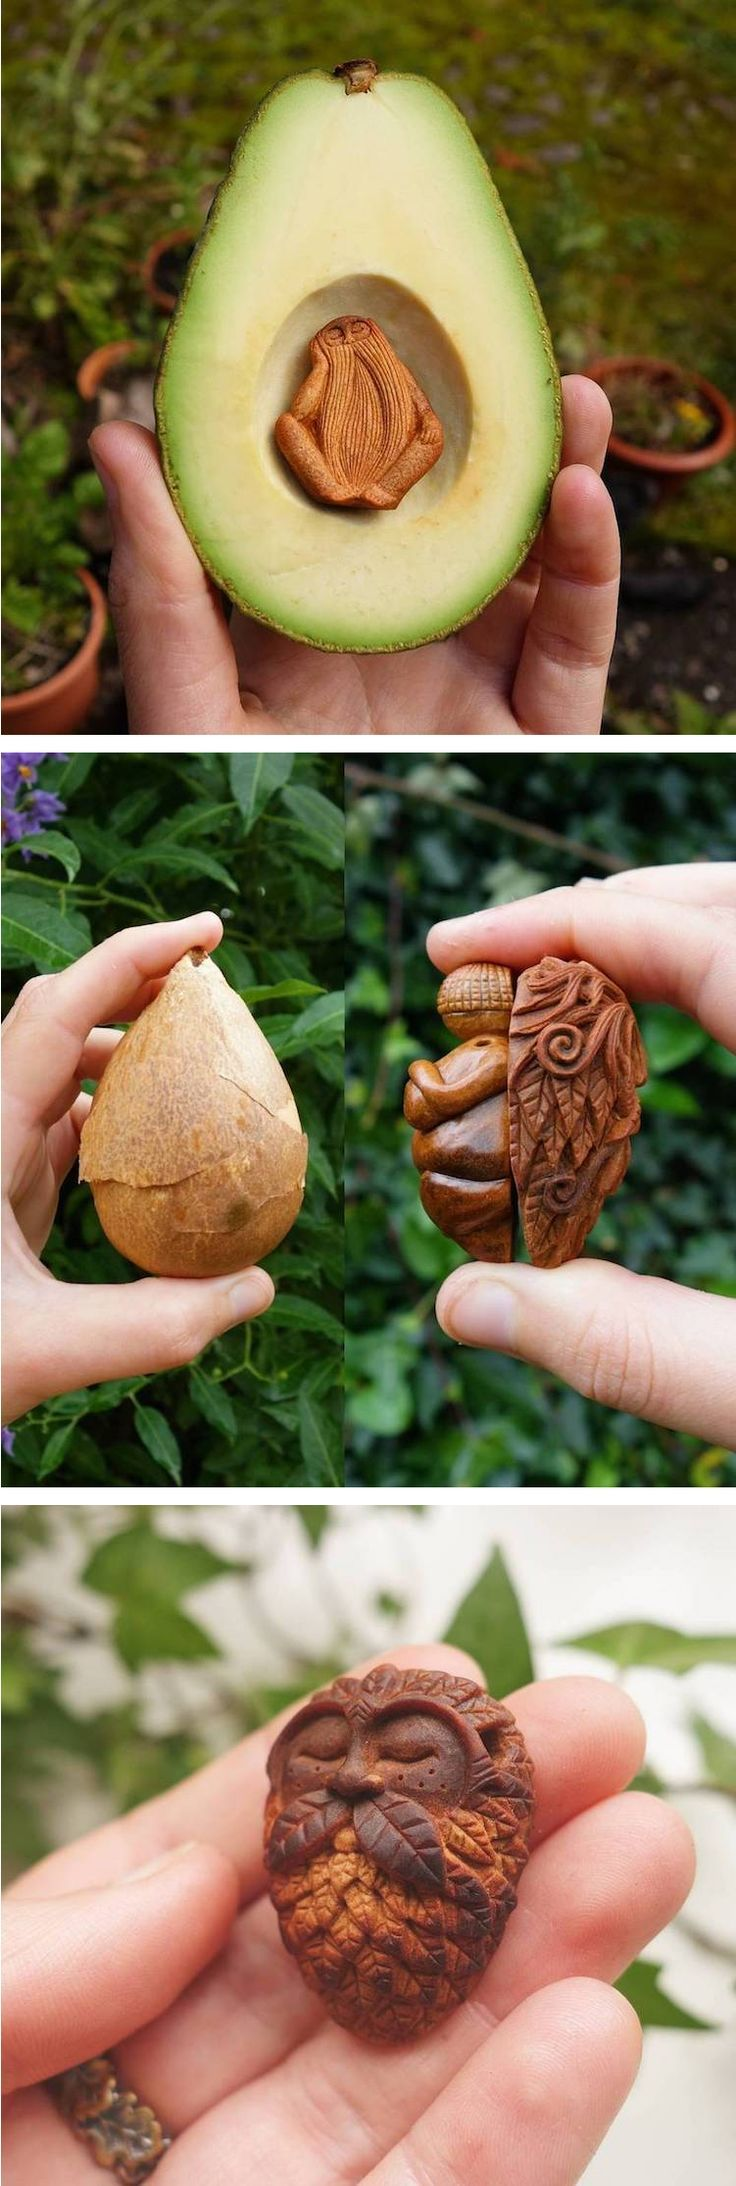 Jan Campbell creates her small carved sculptures out of an unconventional material: avocado stone.